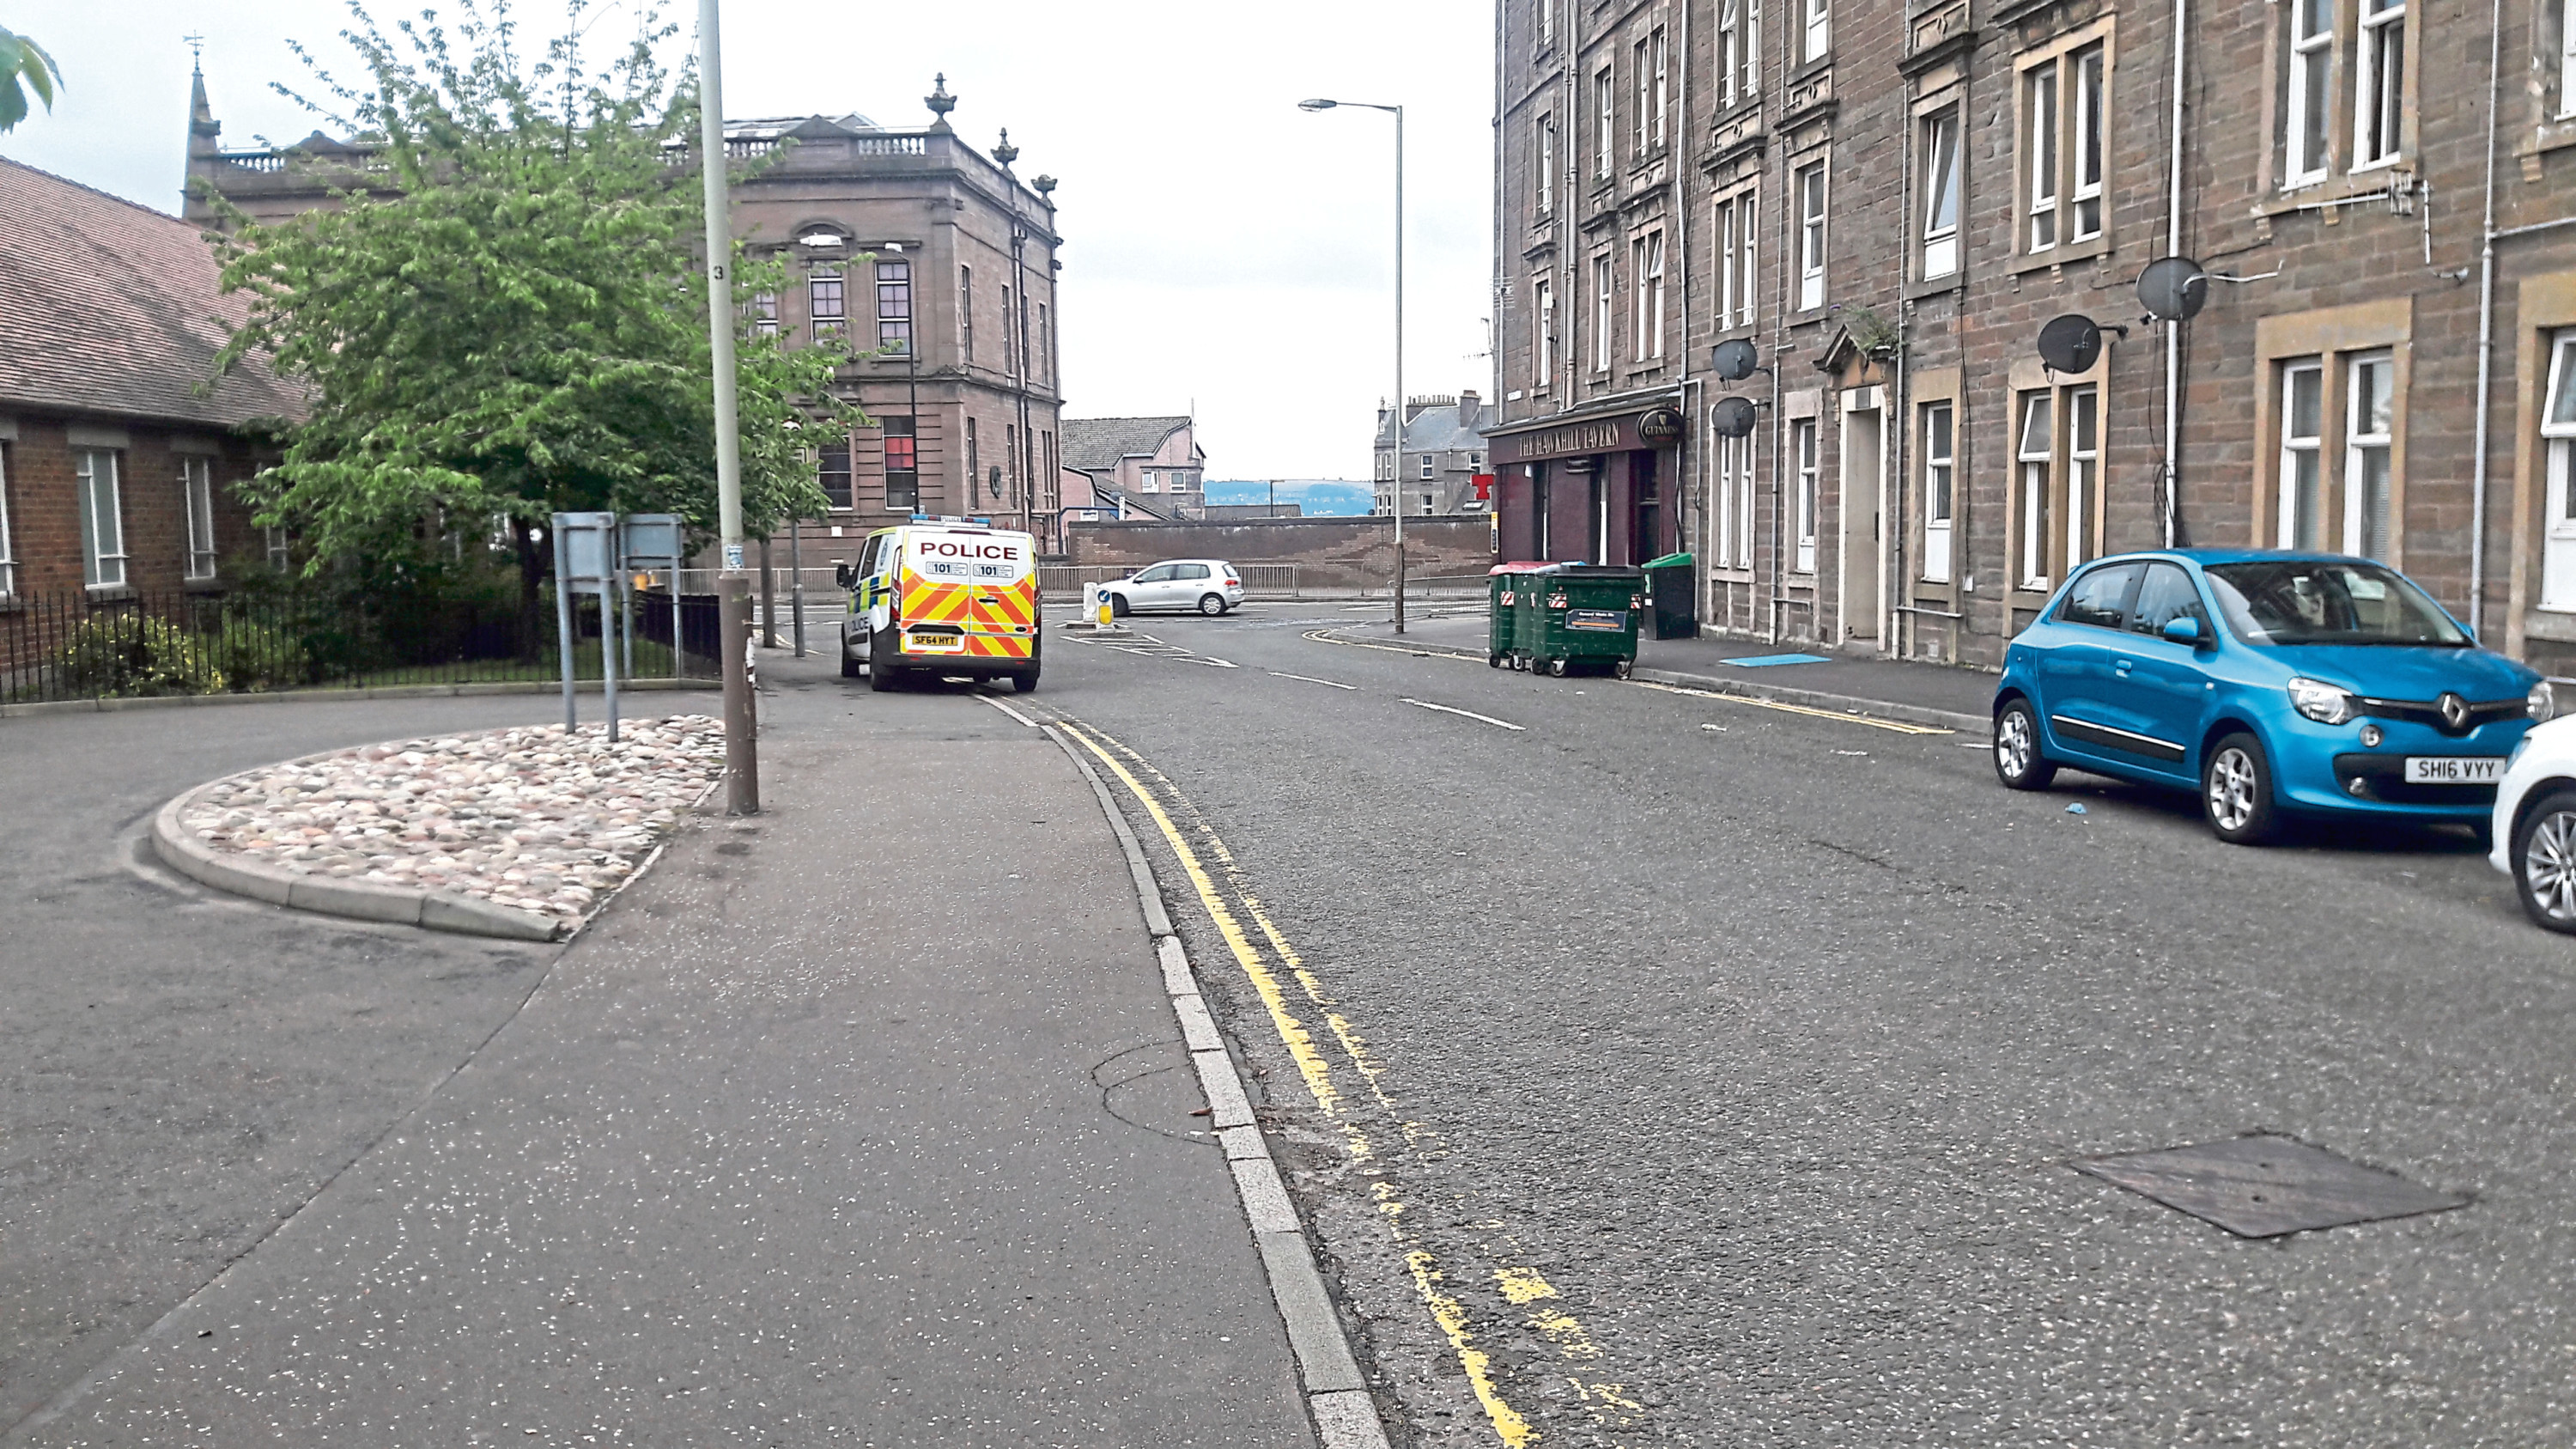 The man's body was discovered in a property on Peddie Street, close to the Hawkhill Tavern, seen on the right of the picture across from the police van.